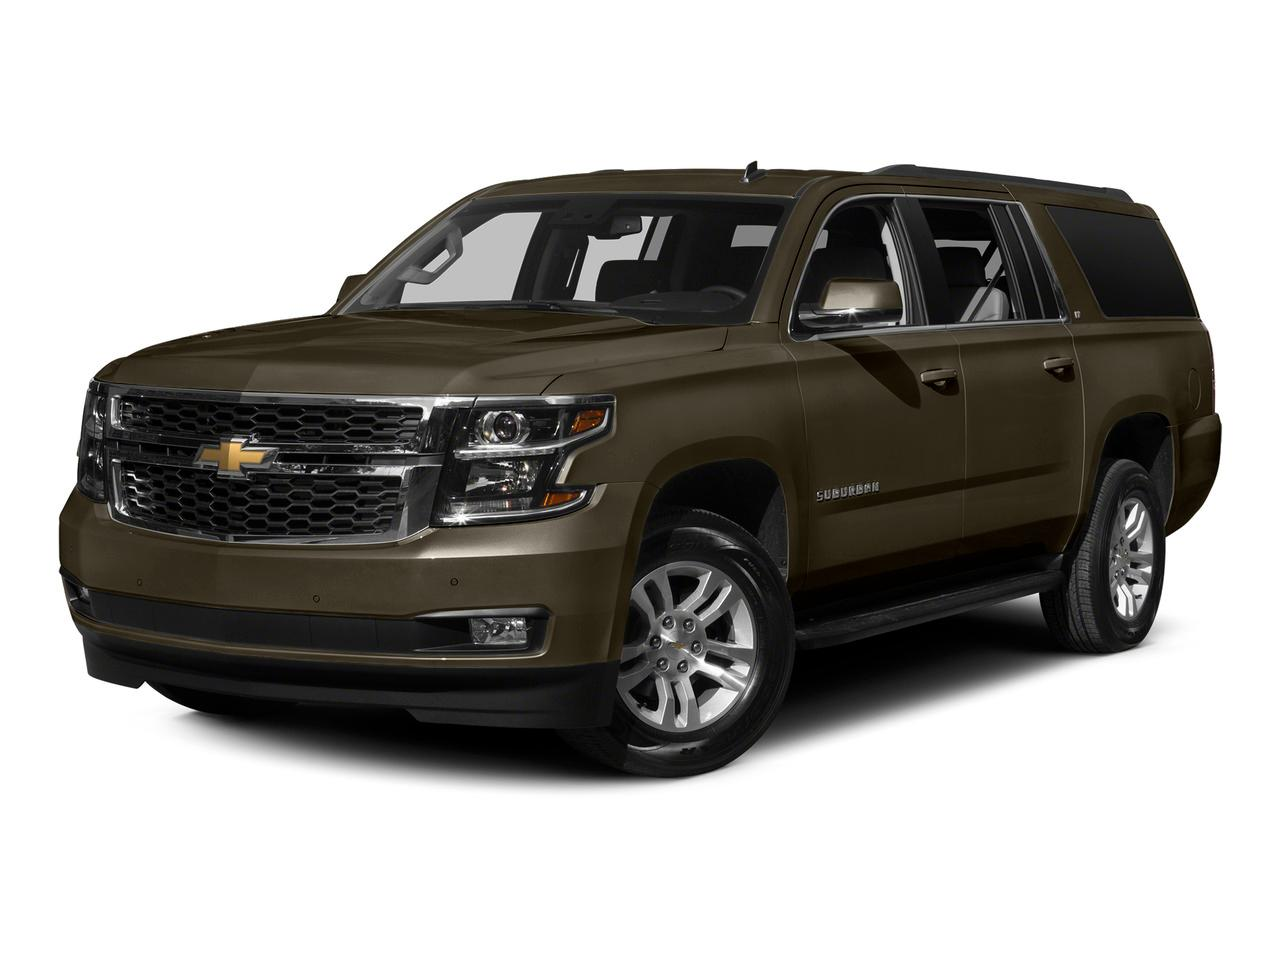 2015 Chevrolet Suburban Vehicle Photo in Lyndhurst, NJ 07071